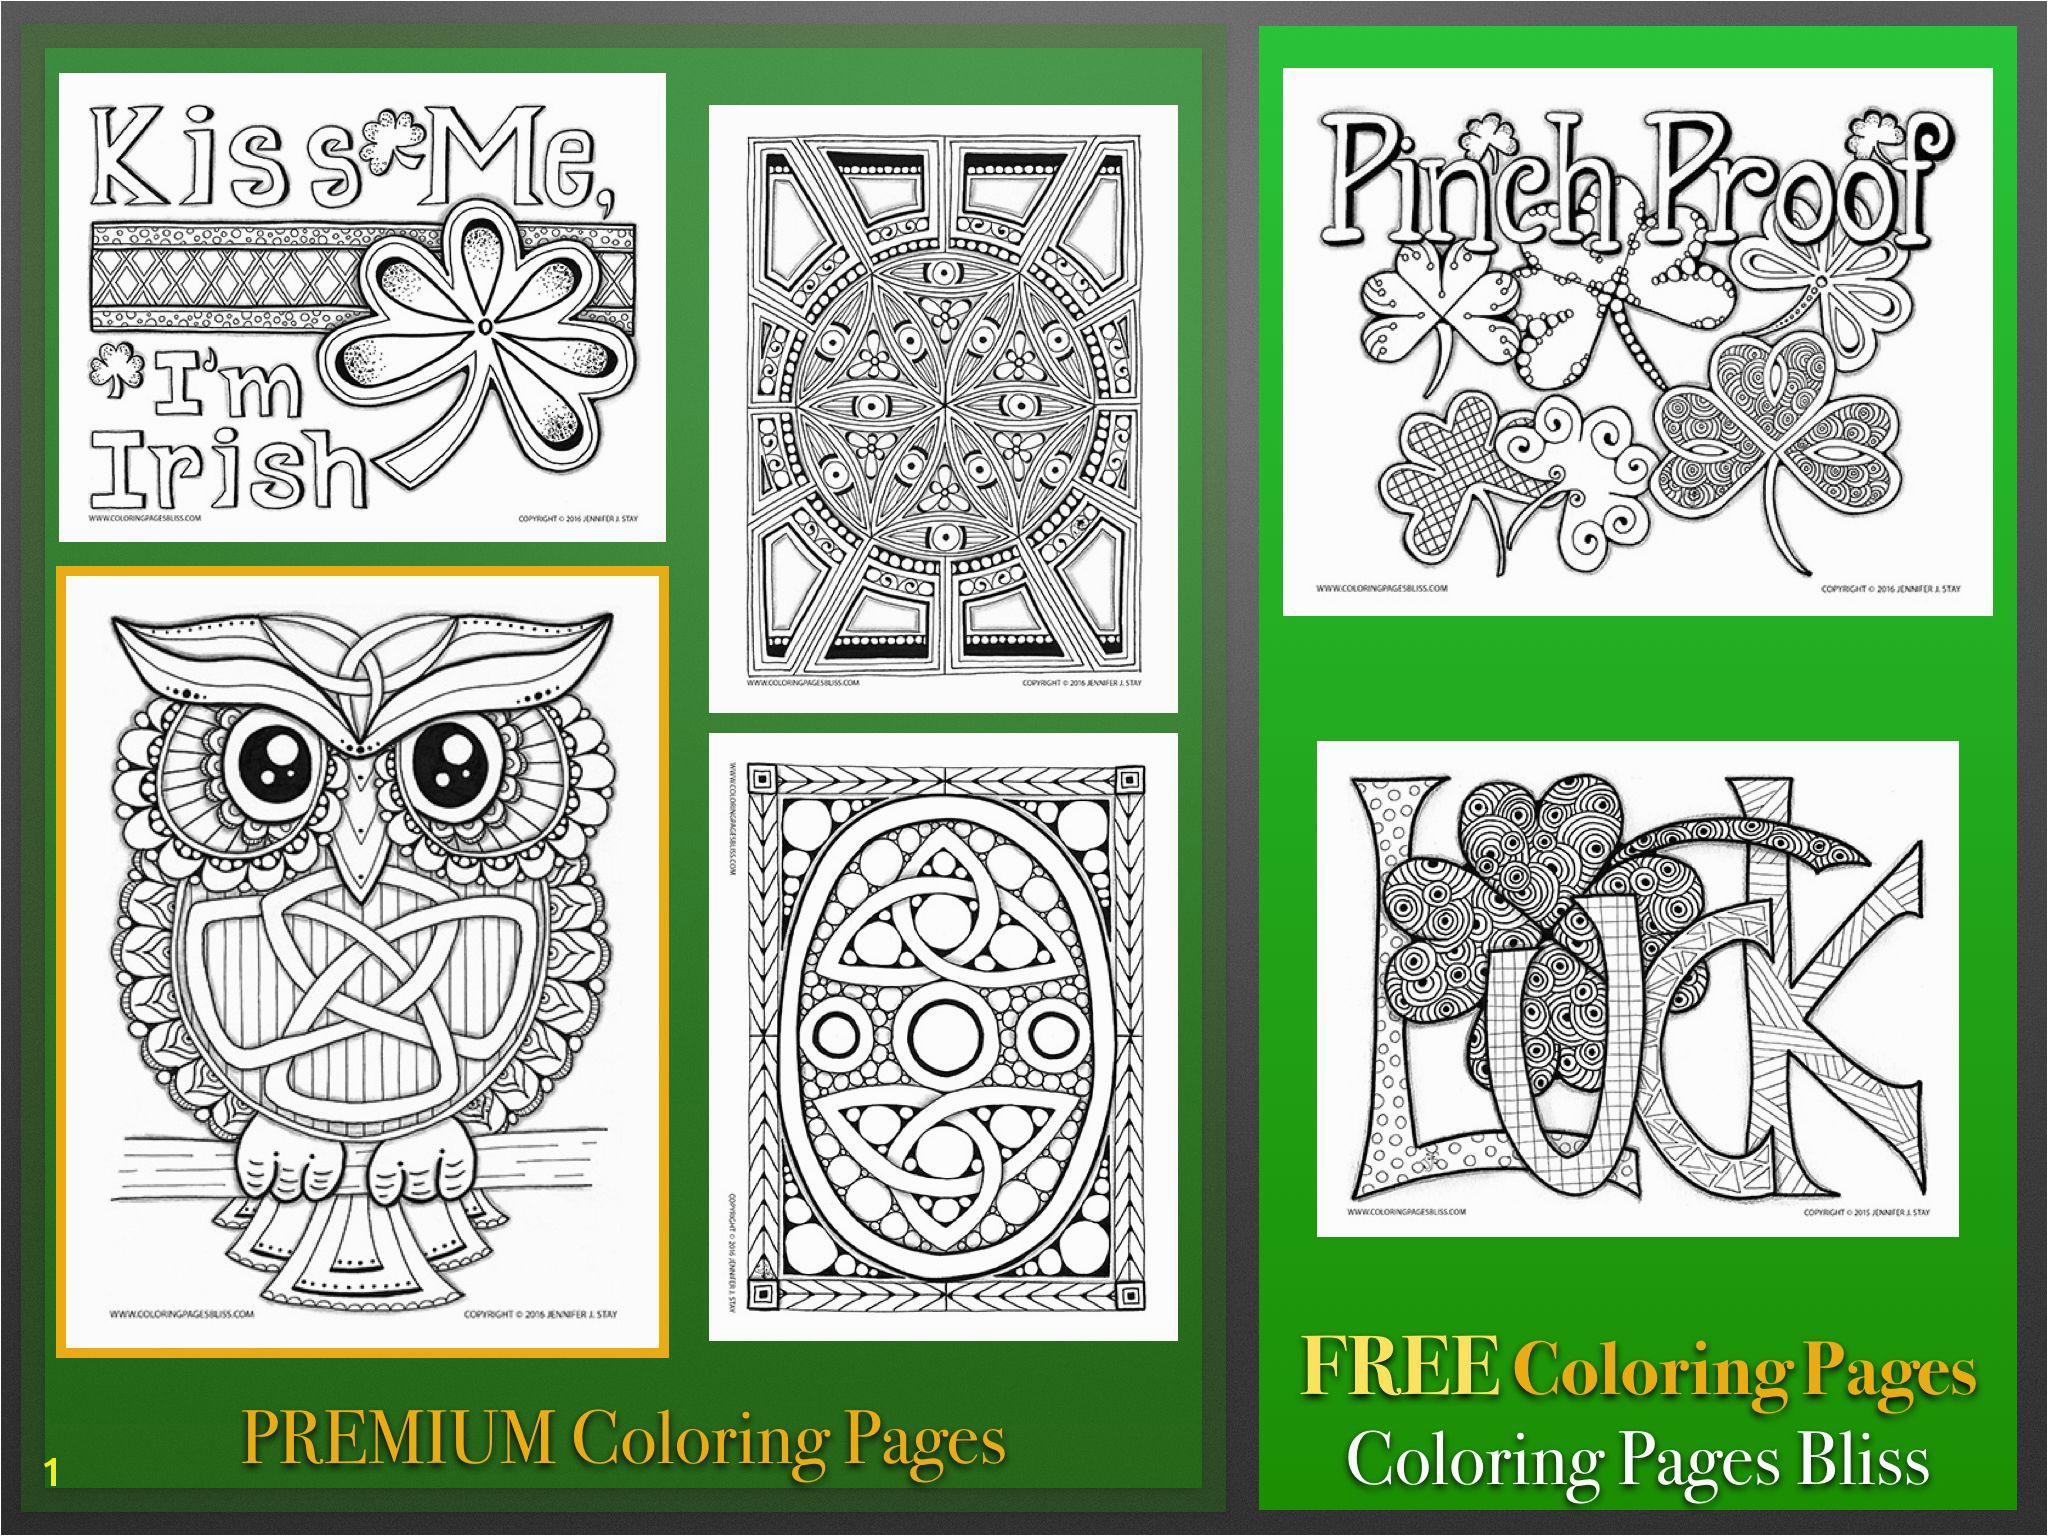 St Patrick s Day printables Downloadable coloring pages for adults hand drawn by Jennifer Stay and full of details to color FREE coloring pages available